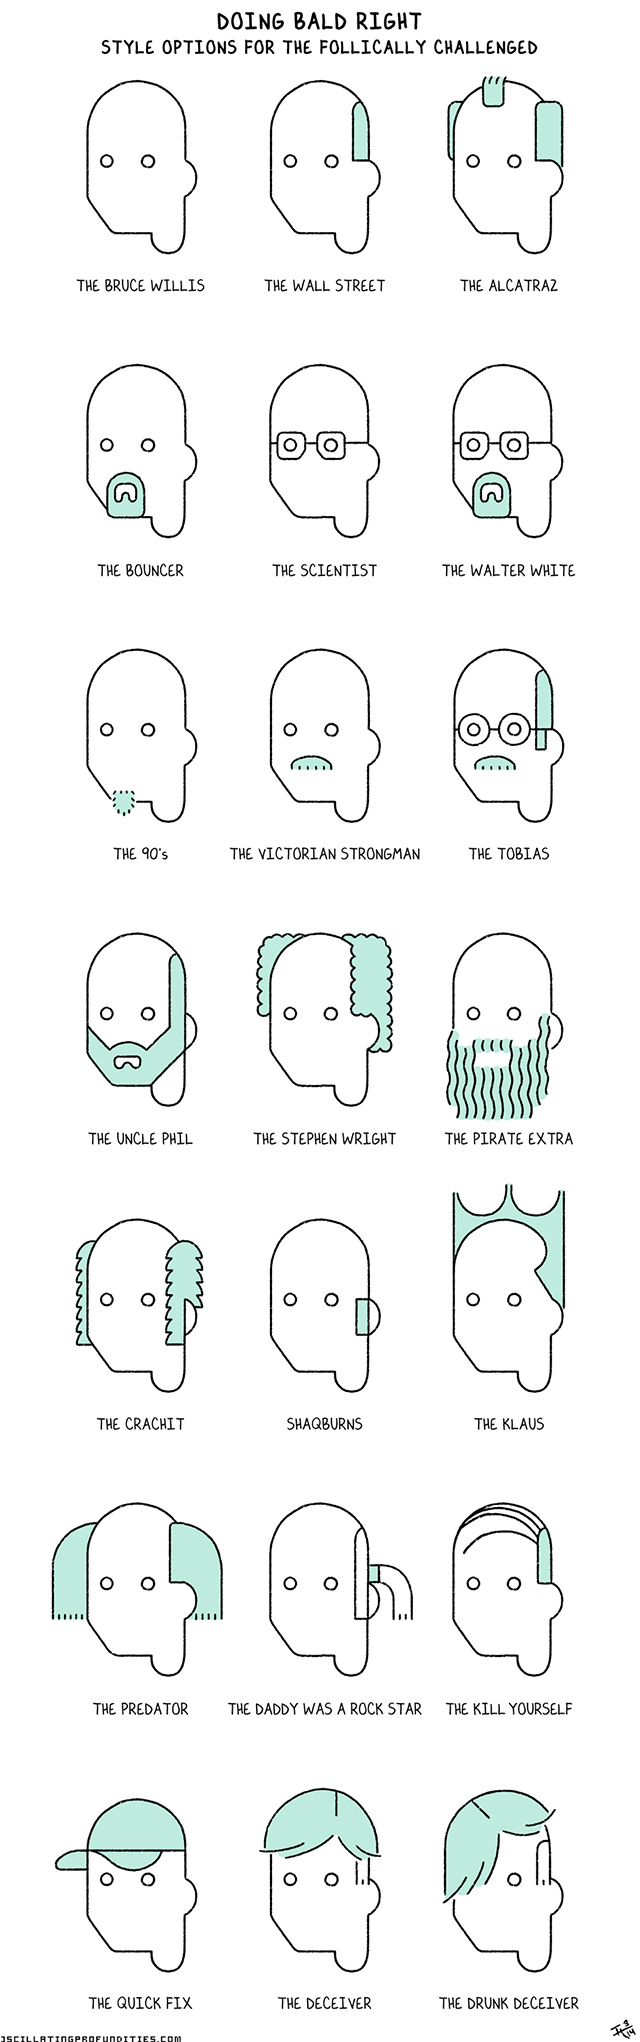 Doing Bald Right, An Illustrated Chart Featuring Style Options for the Follically Challenged